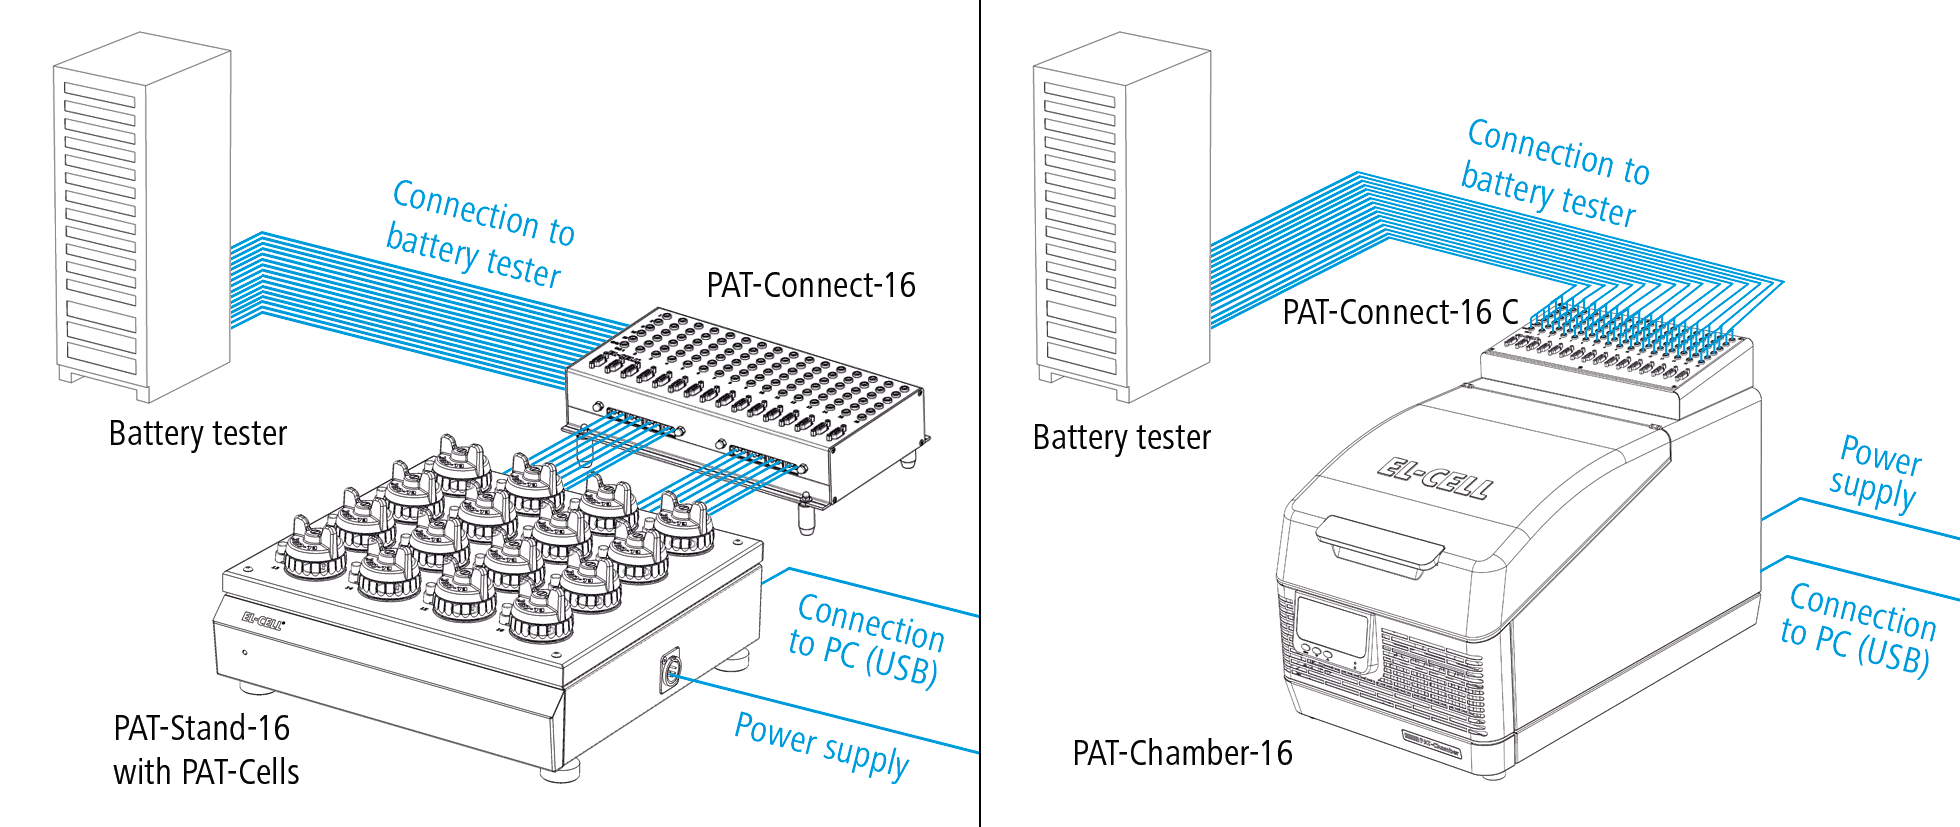 5683814676 Schematic view of a connected PAT-Stand-16 and PAT-Chamber-16 with  PAT-Connect-16 for flexible wiring